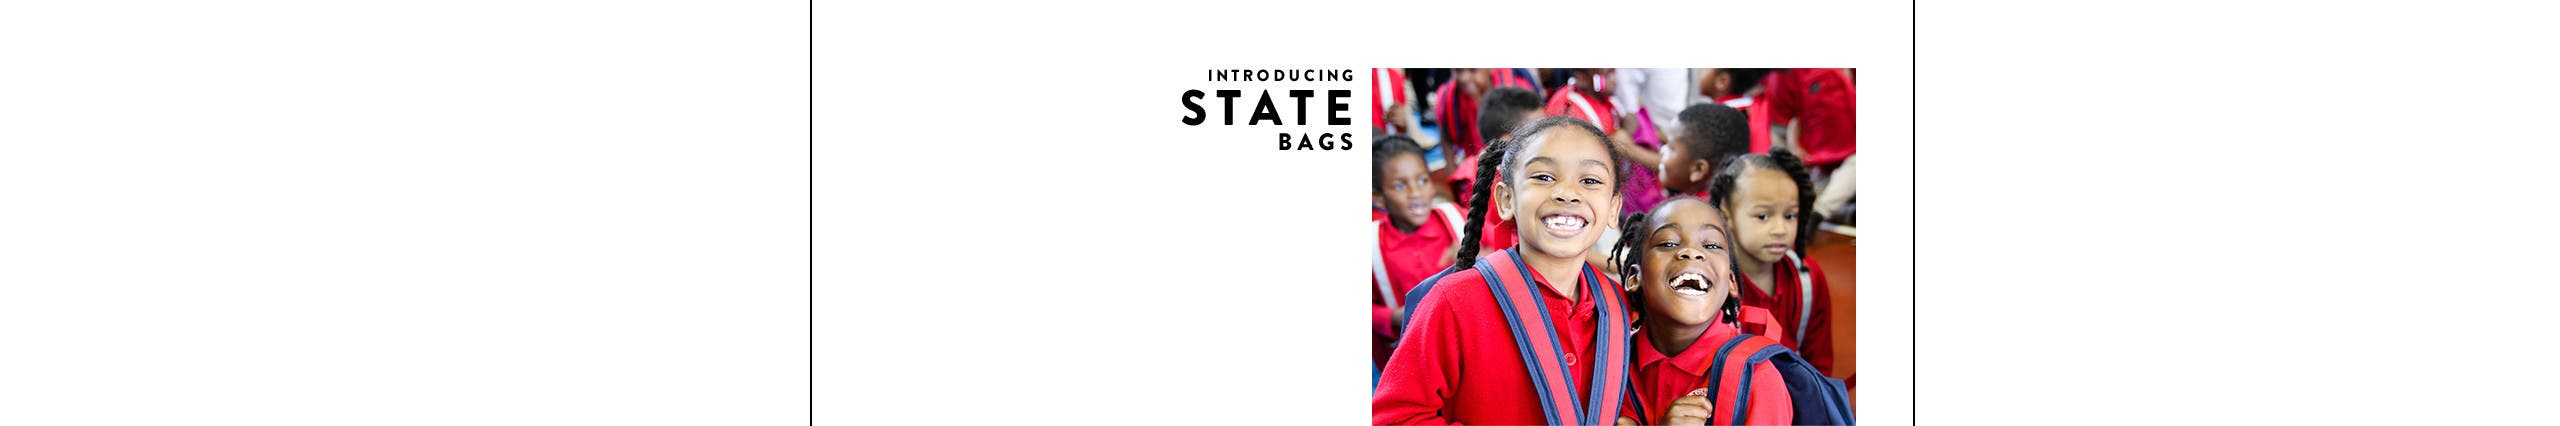 Introducing STATE bags.